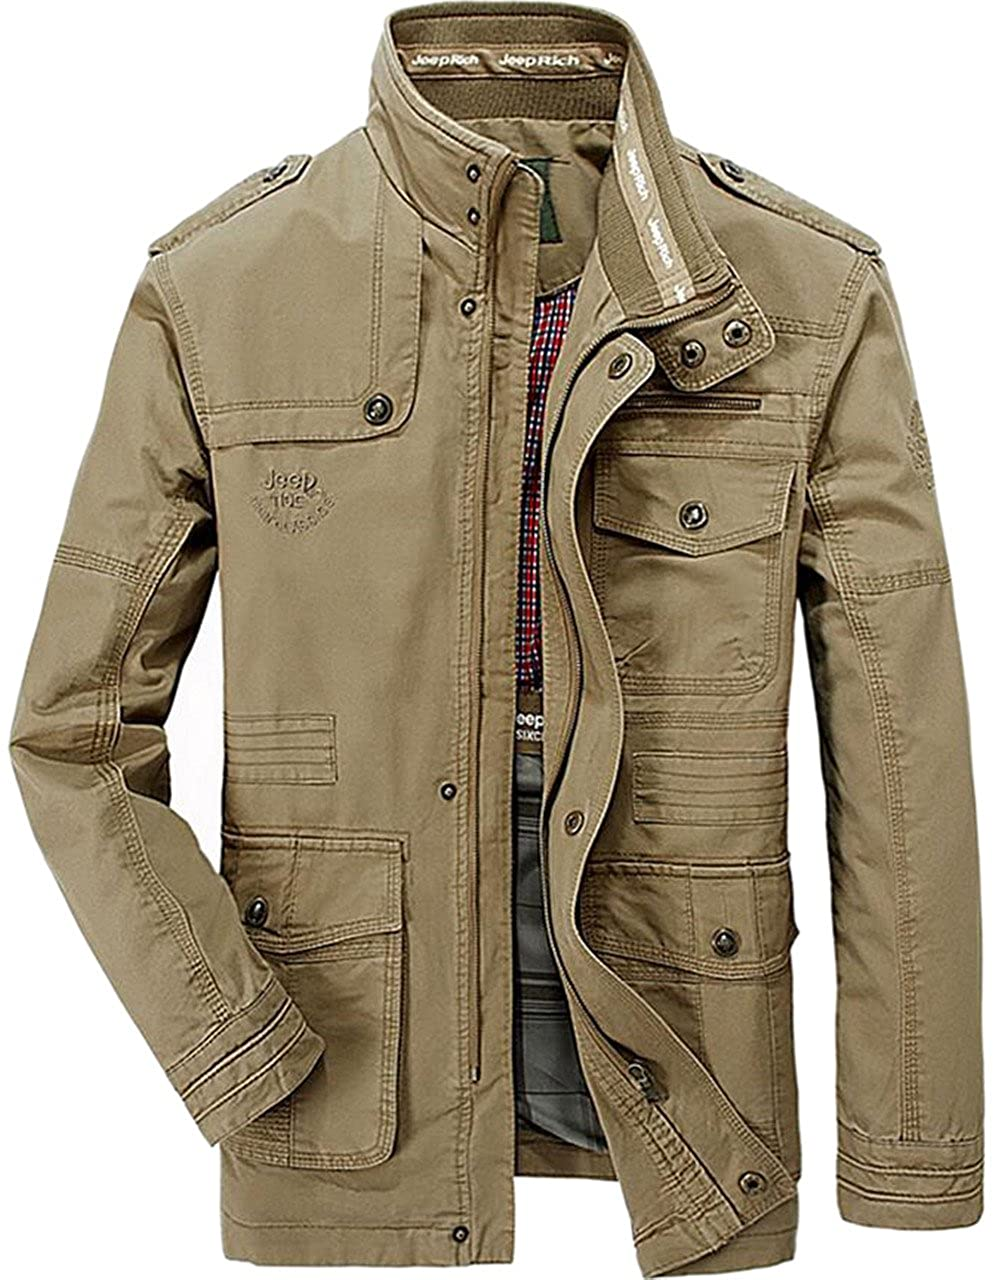 JEWOSOR Men's Cotton Military Tactical Outwear Bomber Jacket Coats Tops Large Size